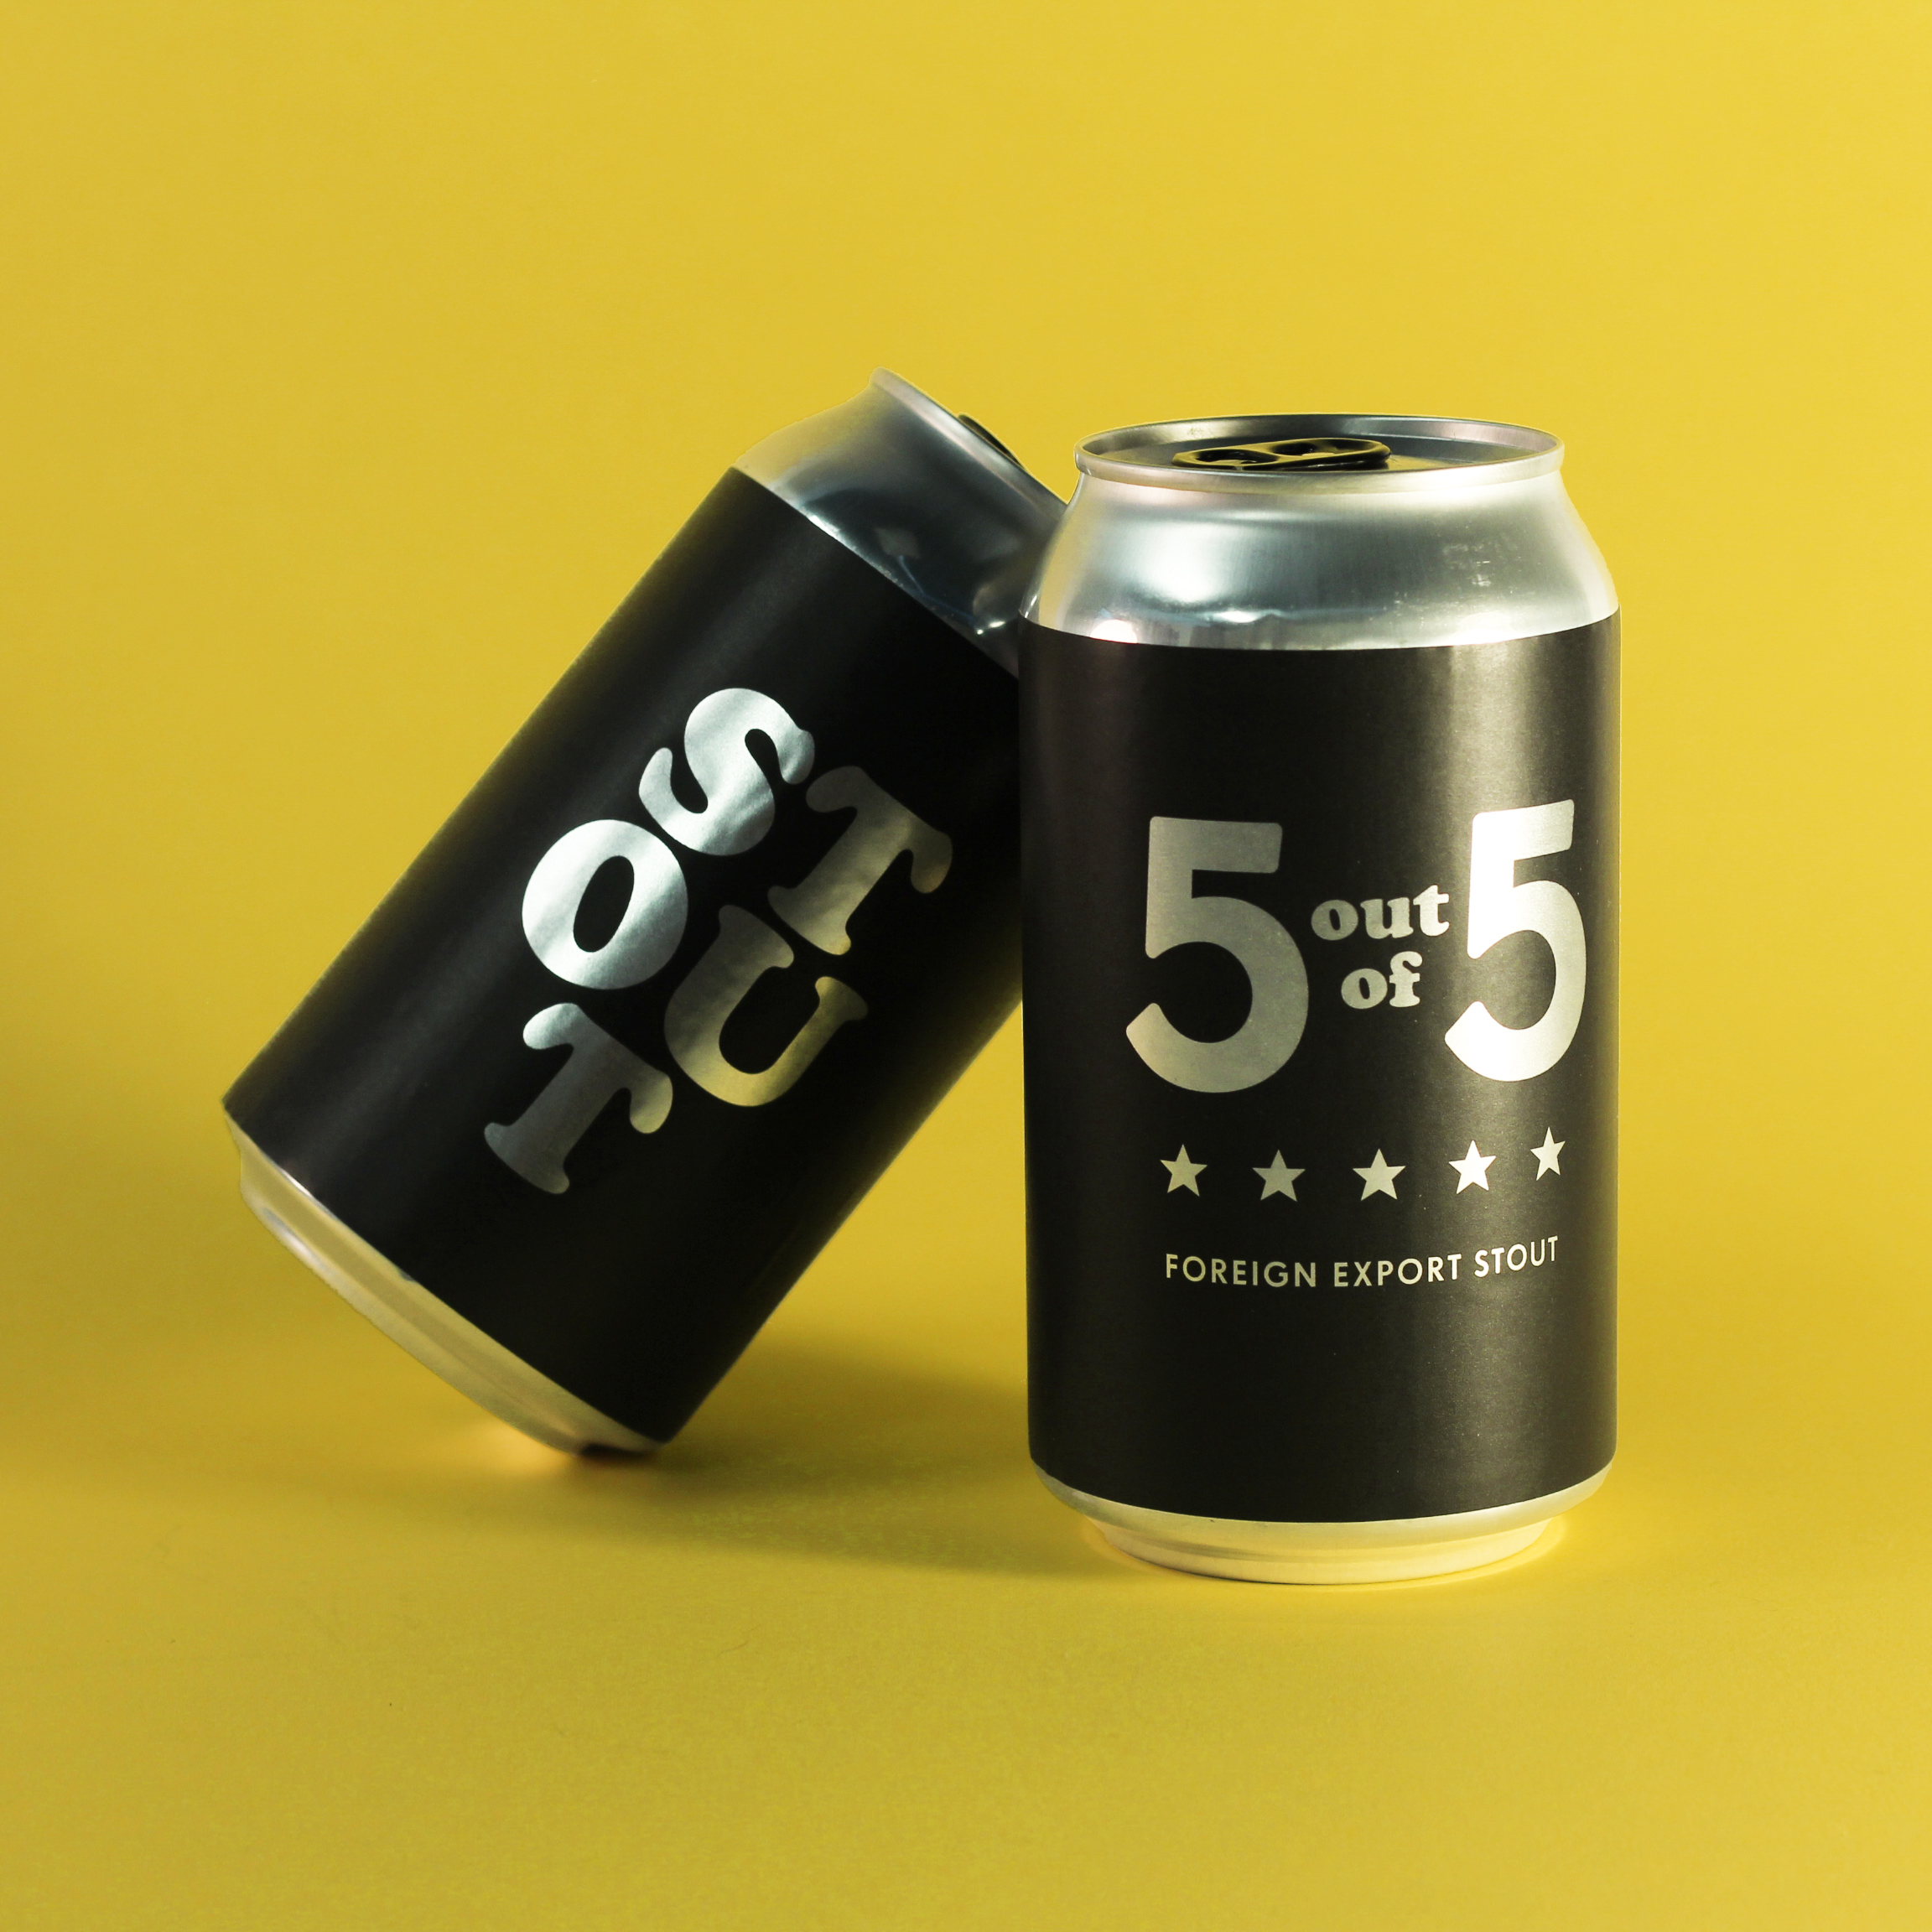 5 out of 5 Product Design and Photography / World Brand Design Society